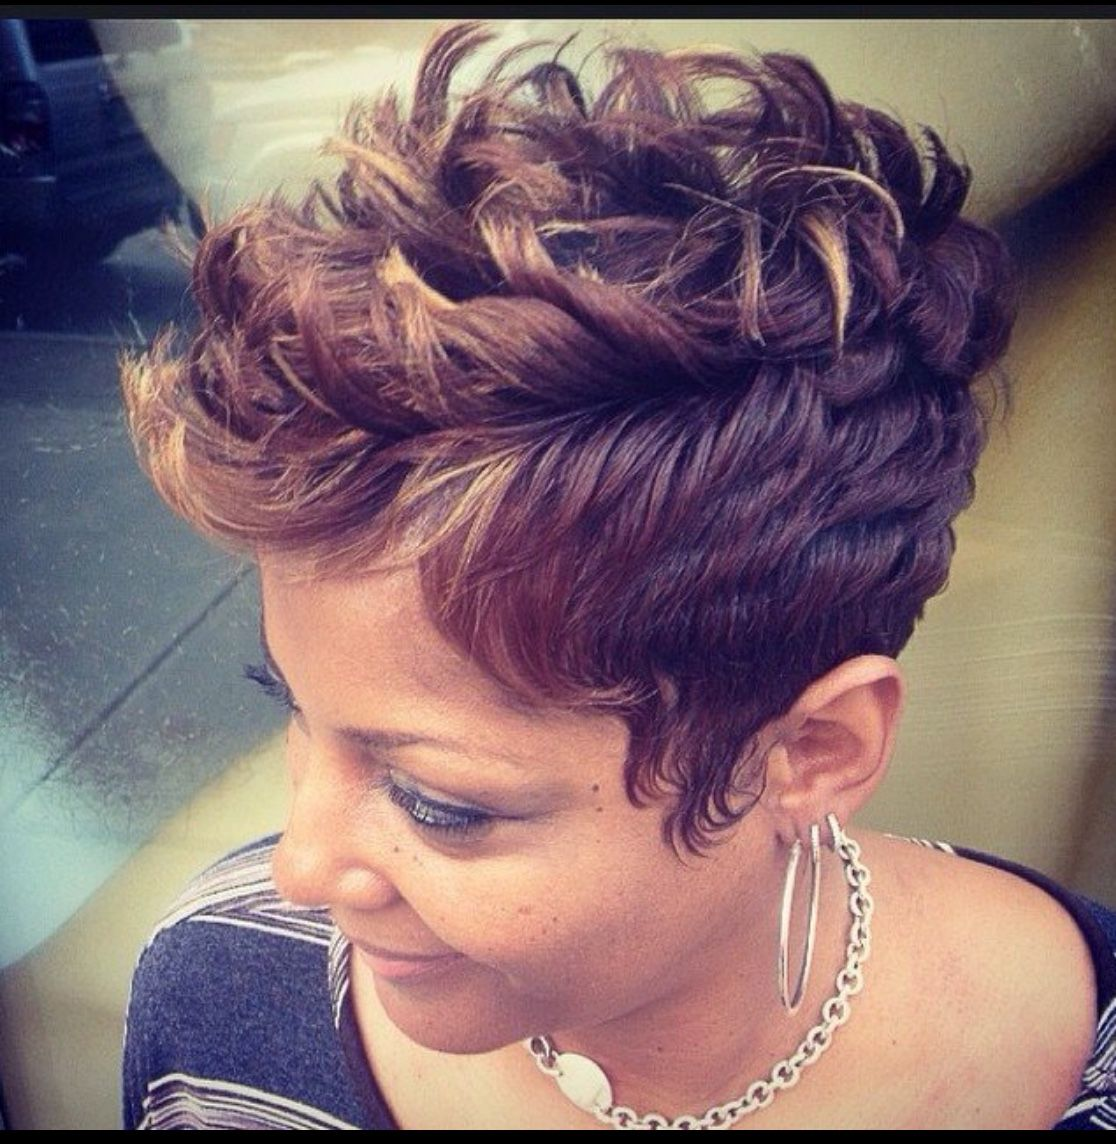 best images about hair styles on pinterest black women natural